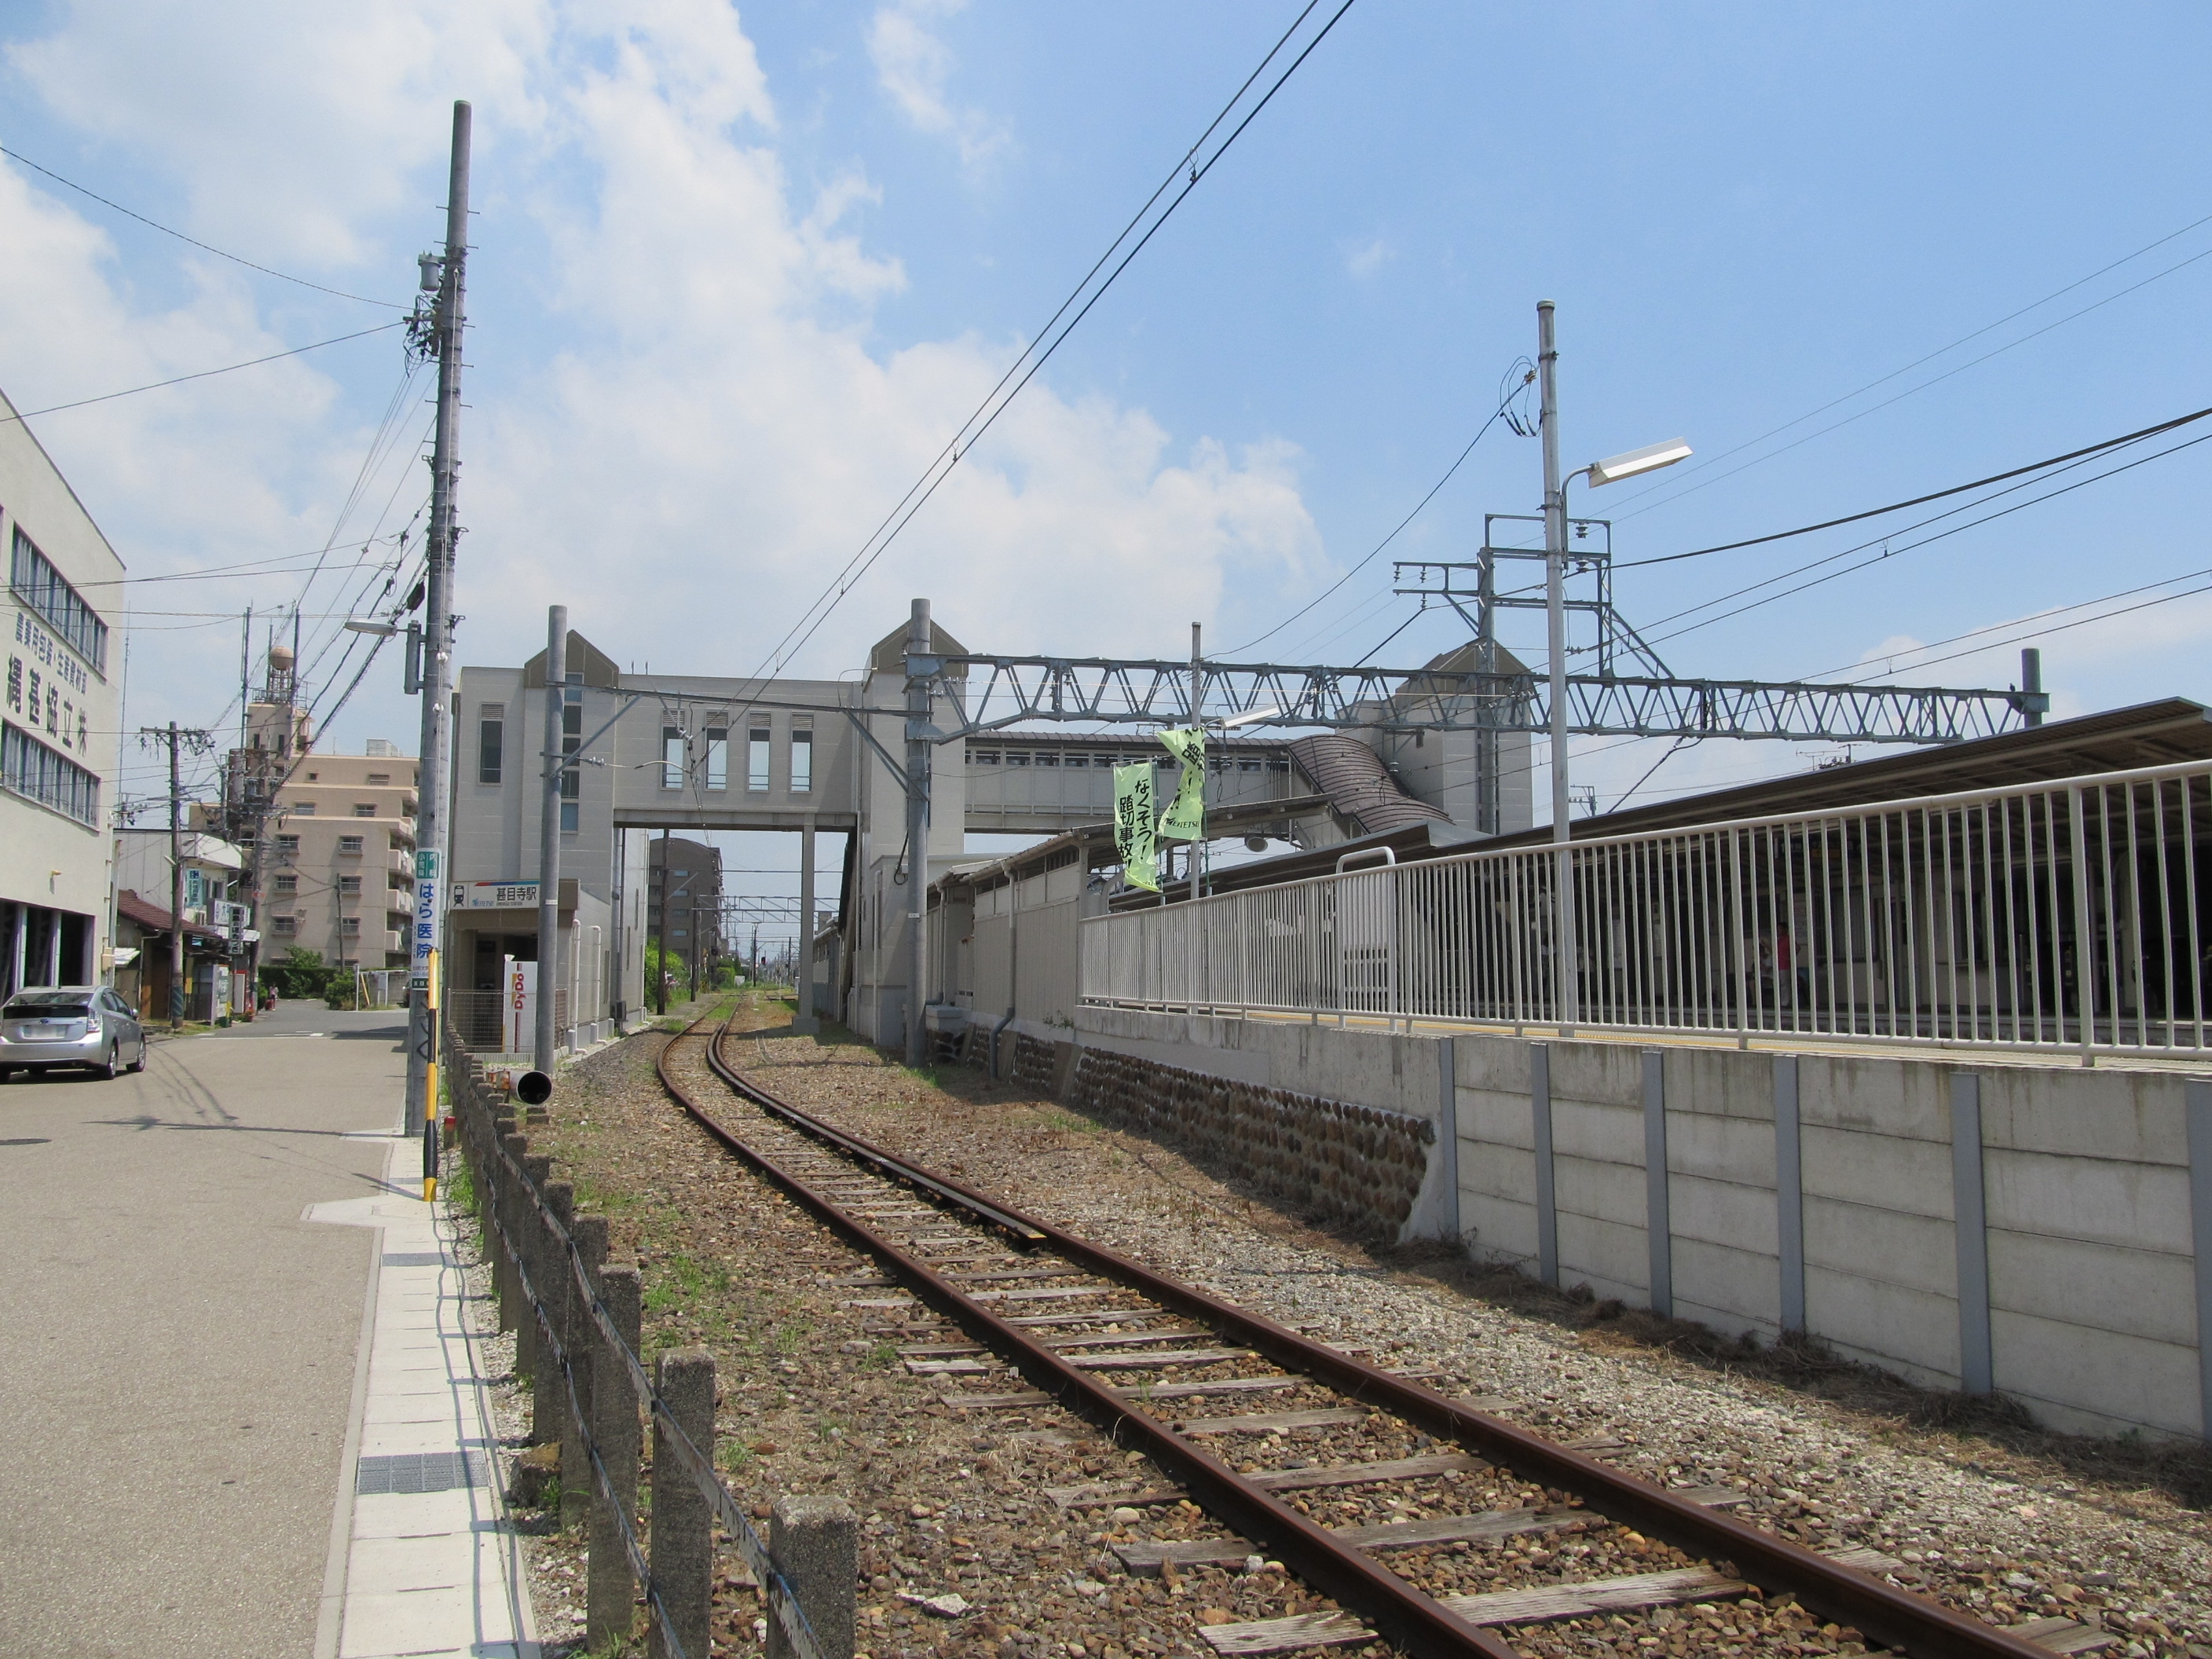 https://upload.wikimedia.org/wikipedia/commons/6/64/MT-Jimokuji_Station-Indwelling_line_1.jpg